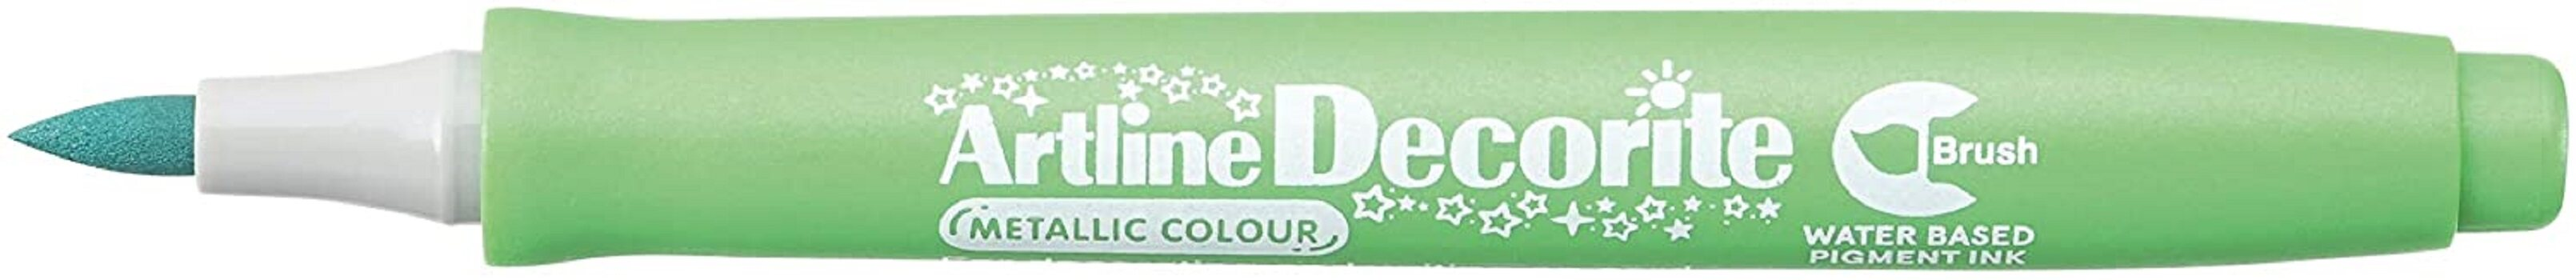 Artline Decorite Brush (EDF-F)  (EDFM-F) Metallic Green